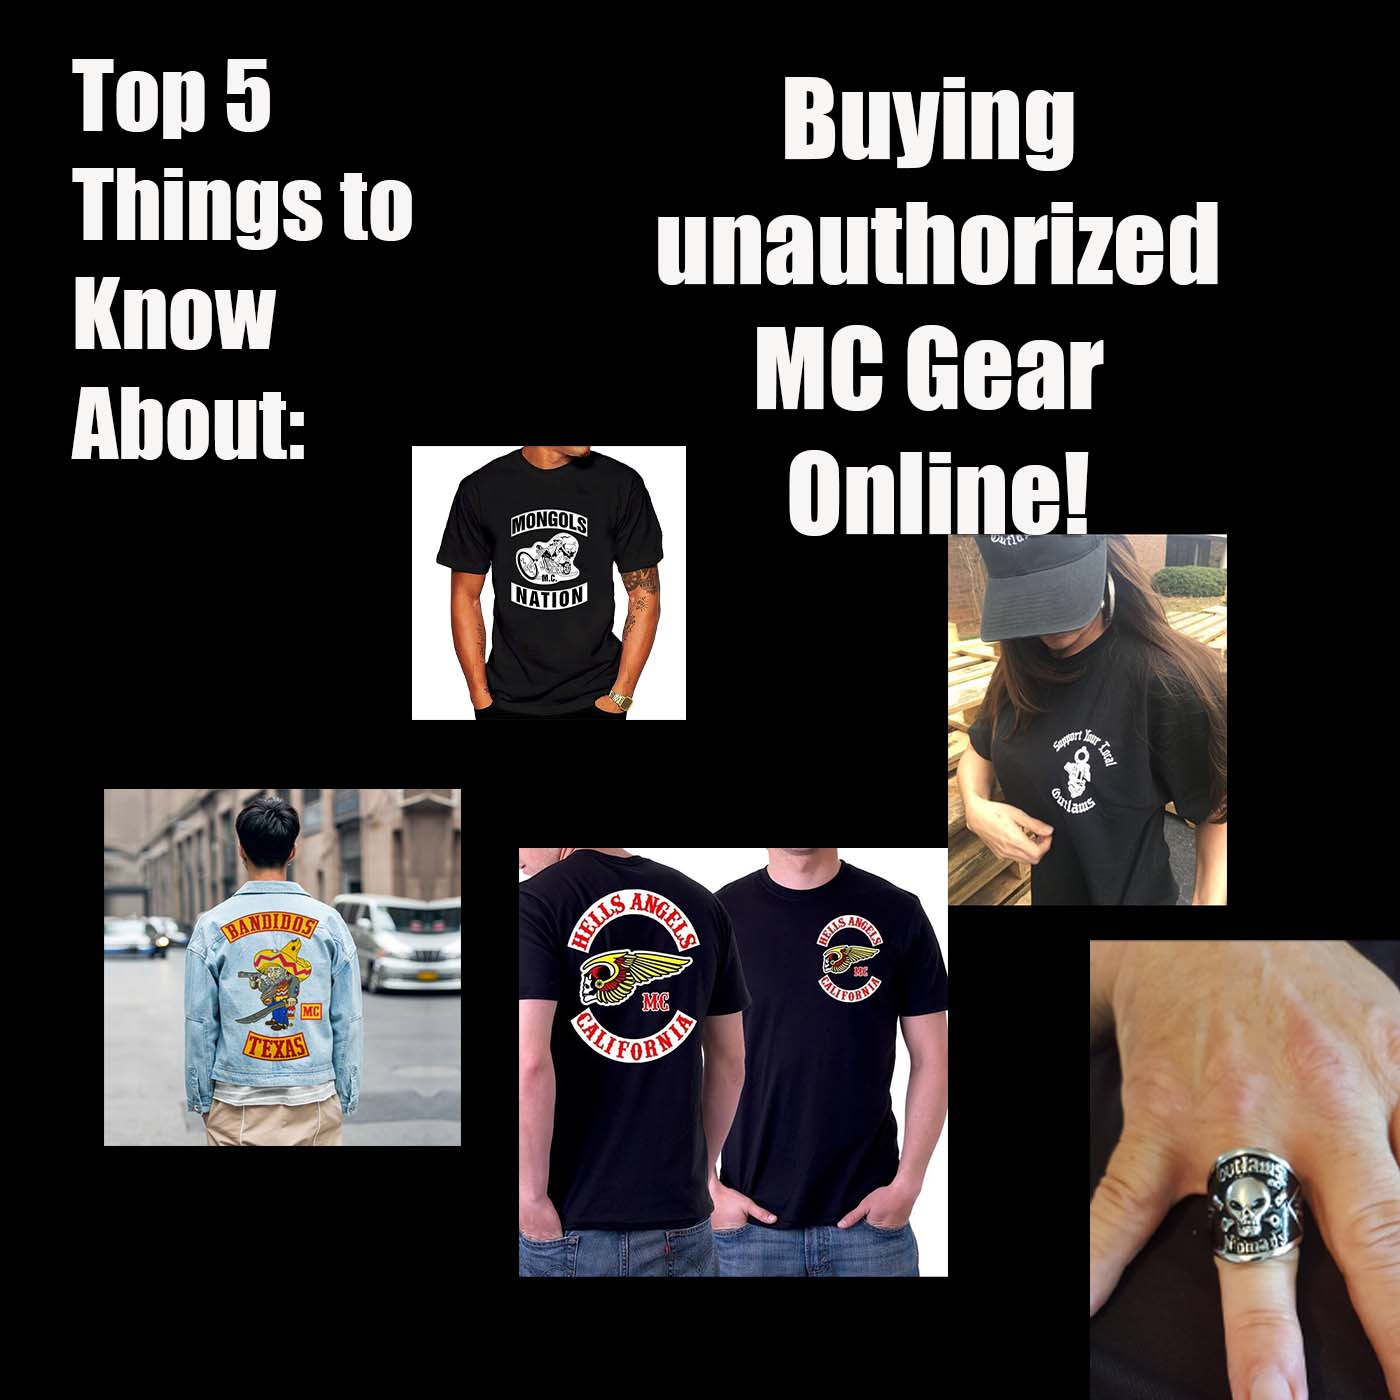 Top 5 Things to Know About Buying Unauthorized MC Gear